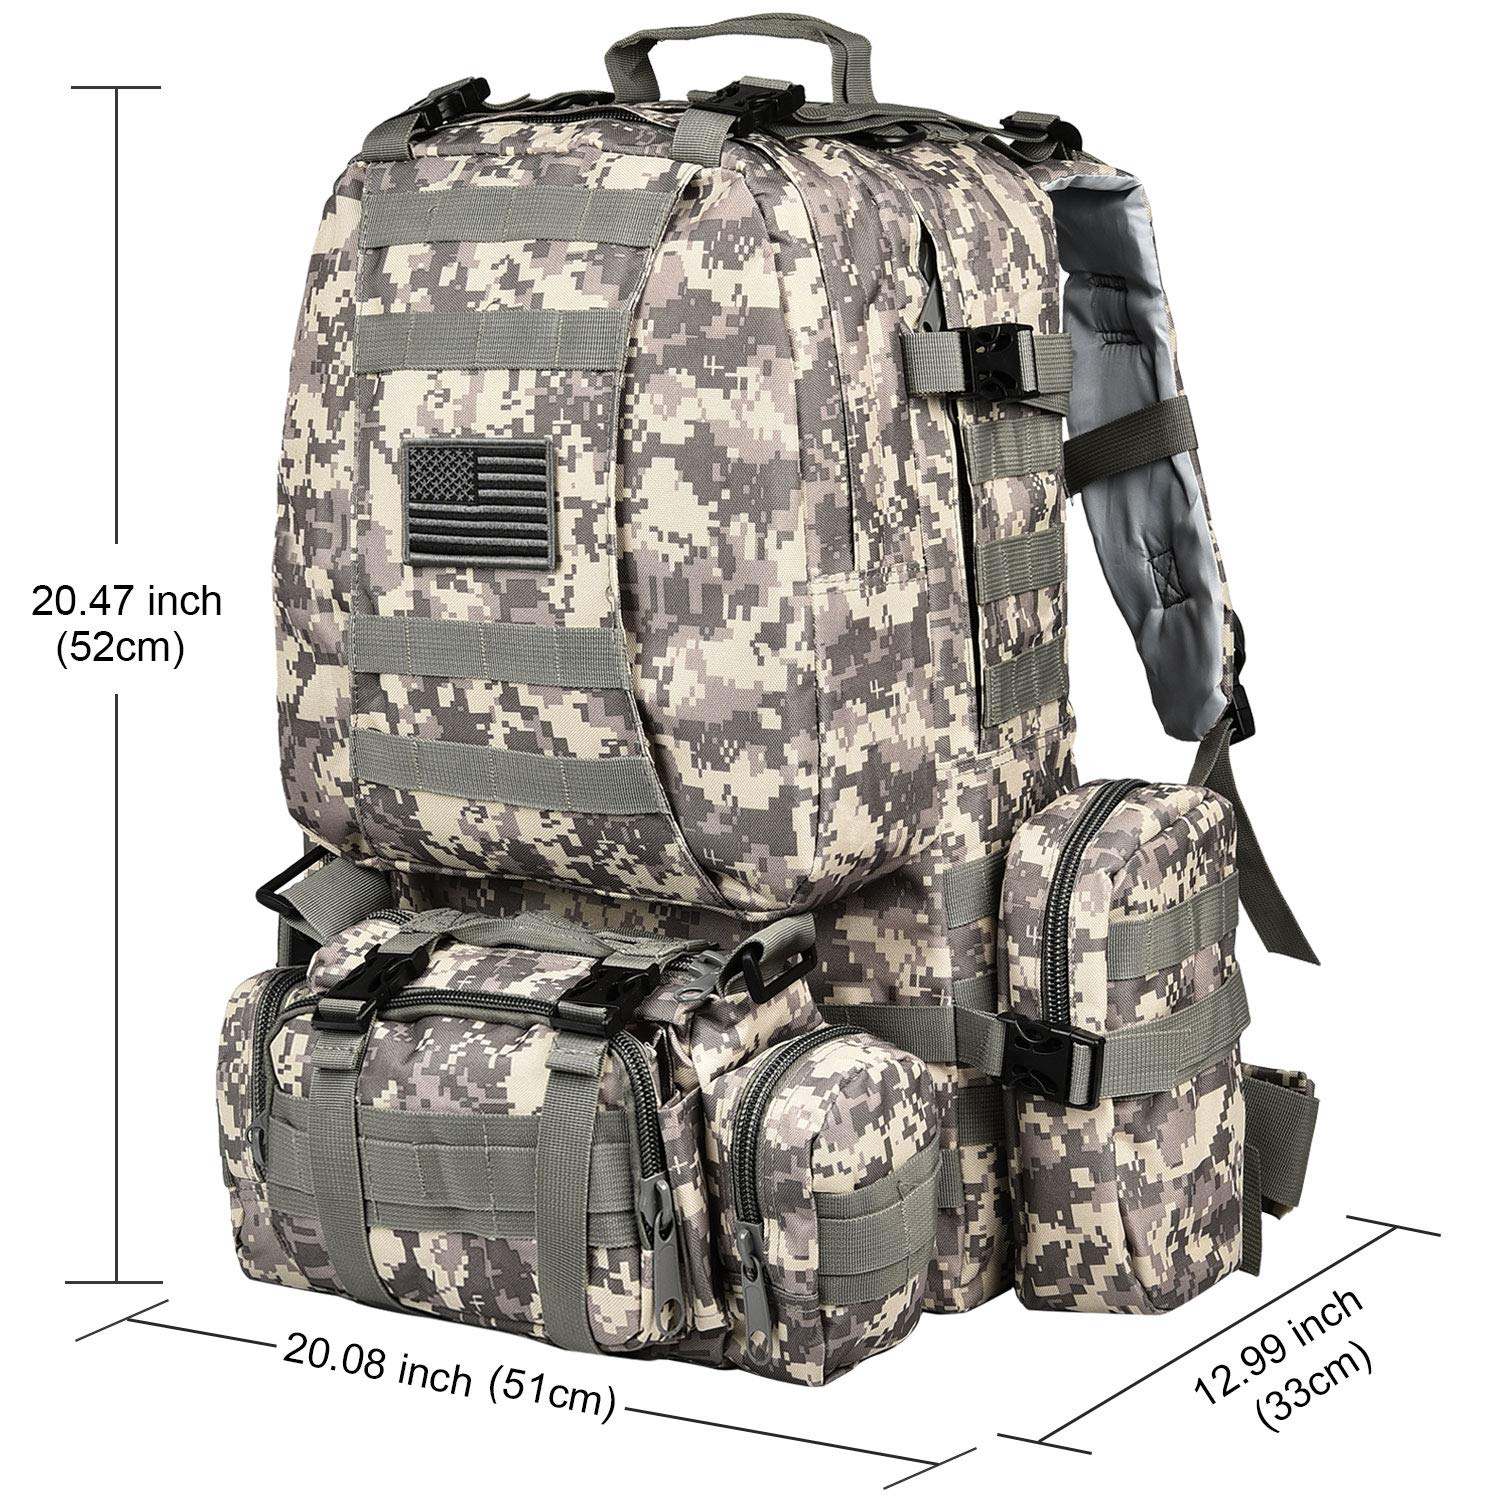 CVLIFE Tactical Military Backpack 60L Built-up Army Rucksacks Outdoor 3 Day Assault Pack Combat Molle Backpack for Hunting Hiking Fishing with Flag Patch Camouflage ACU by CVLIFE (Image #2)